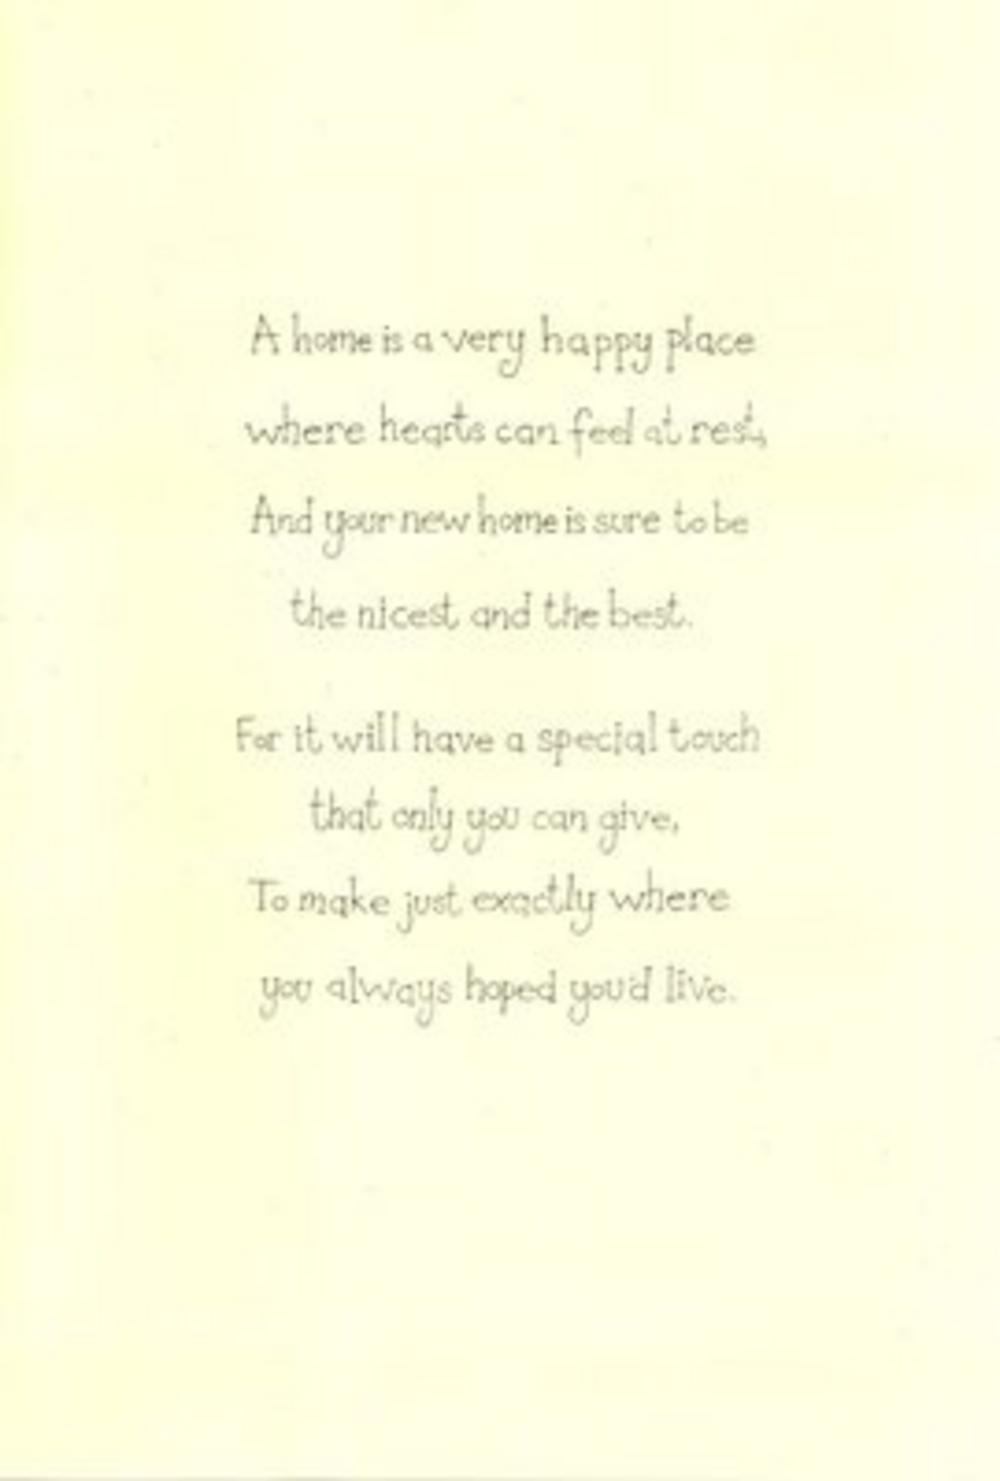 New House Poems